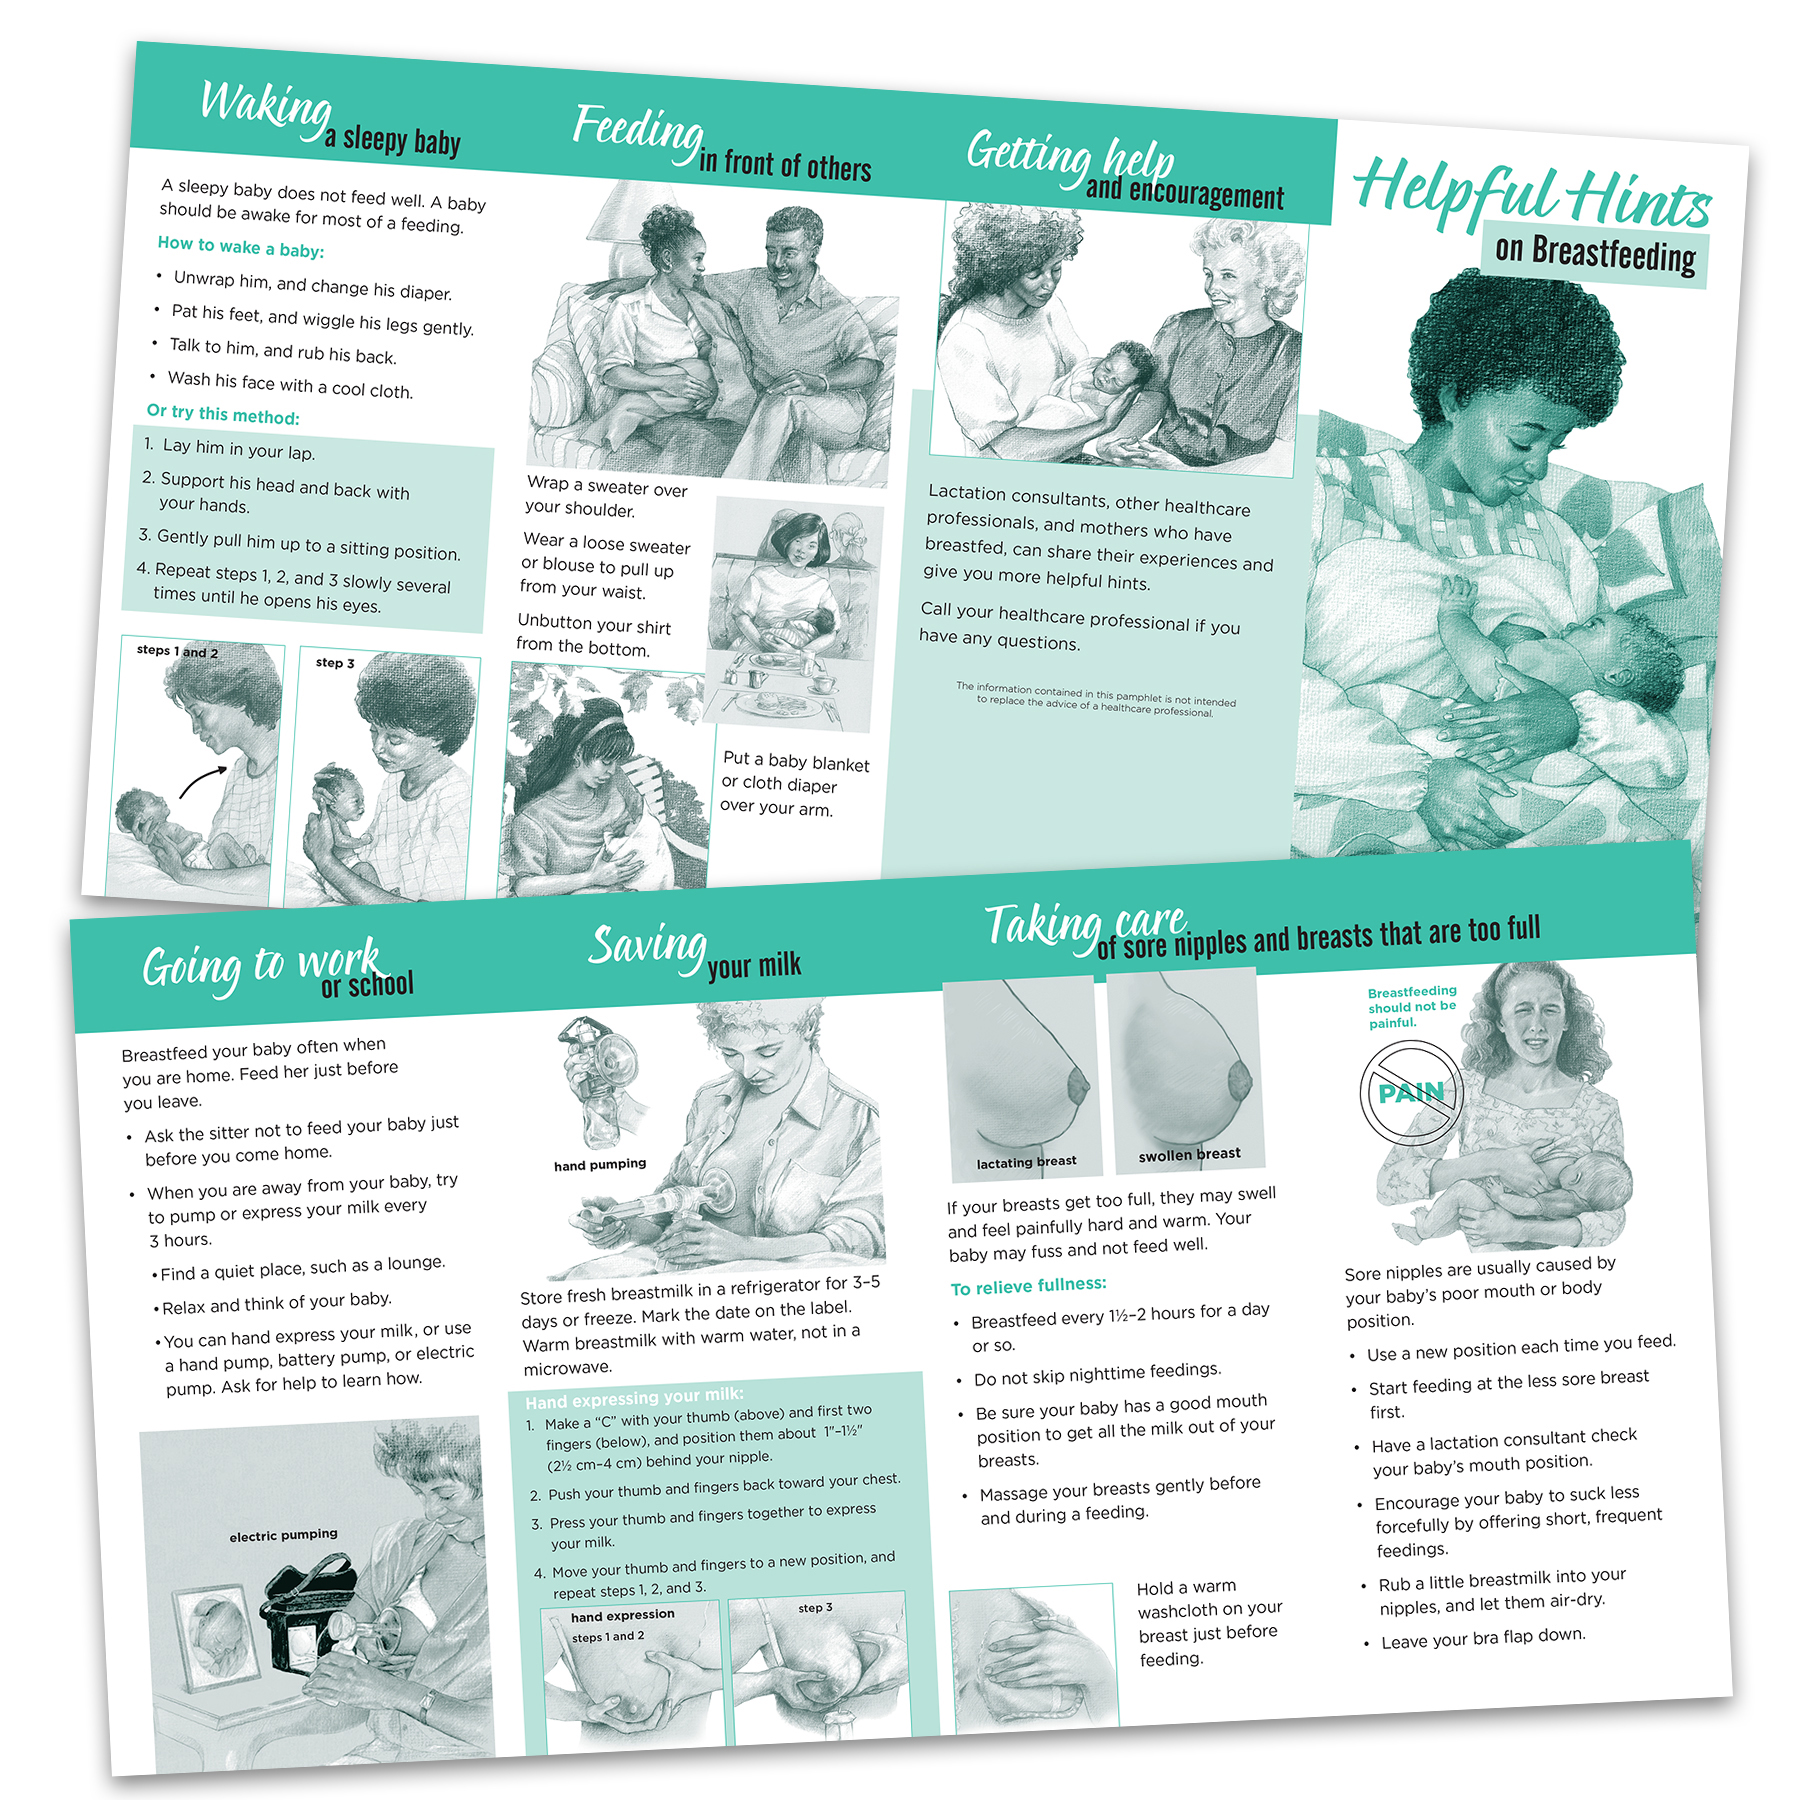 helpful hints on breastfeeding pamphlet, two-color illustrated hints on breastfeeding pamphlet front and back shown, Childbirth Graphics, 38532